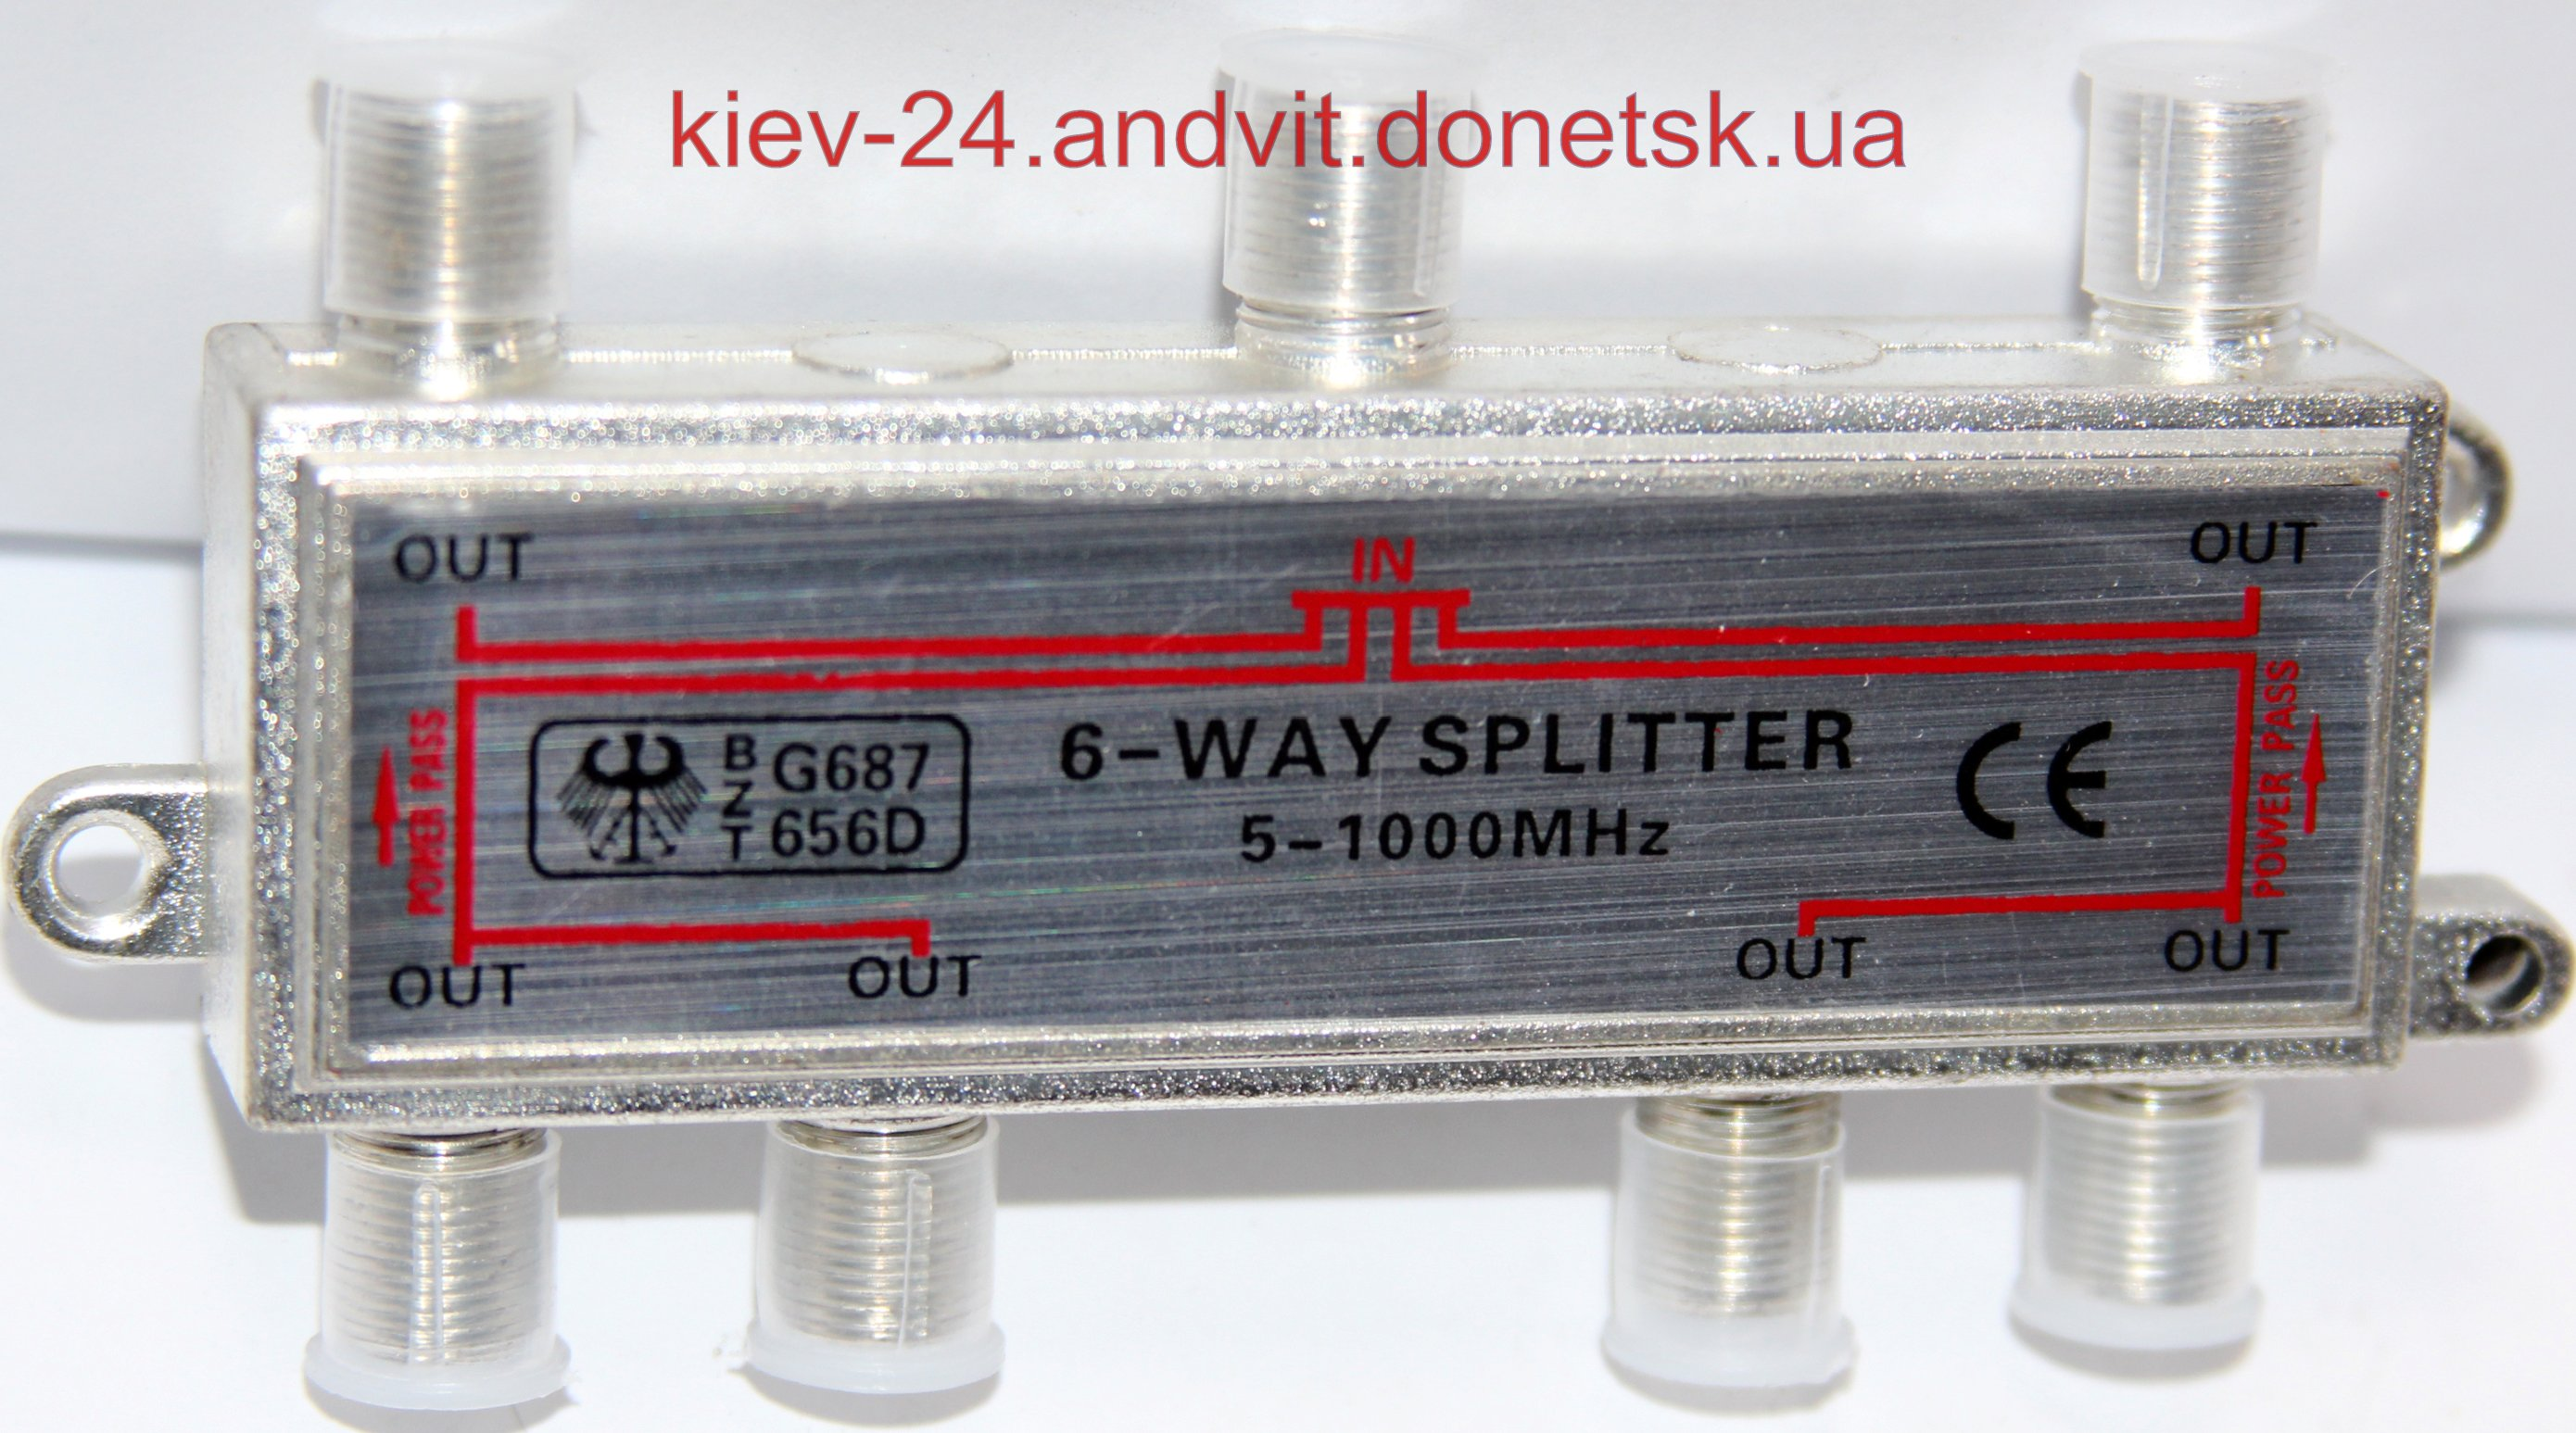 картинка Splitter 6-way Germany HQ 5-2000MHZ, корпус металл от интернет магазина Radiovip